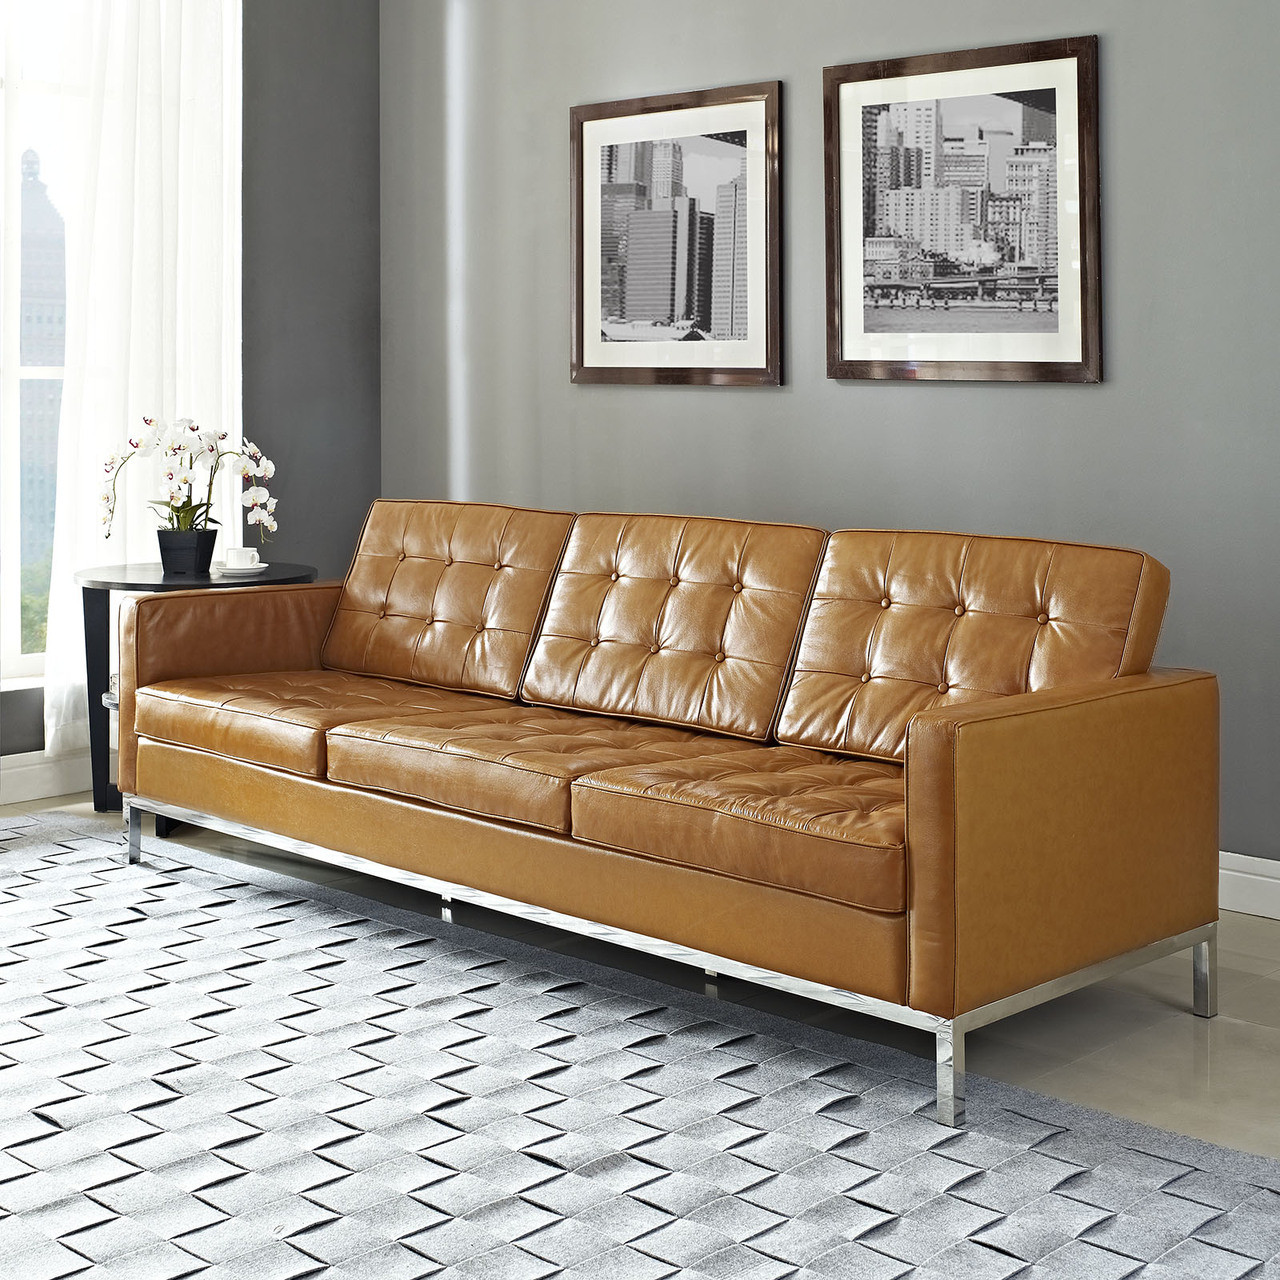 florence style leather loft sofa  zin home - tan leather